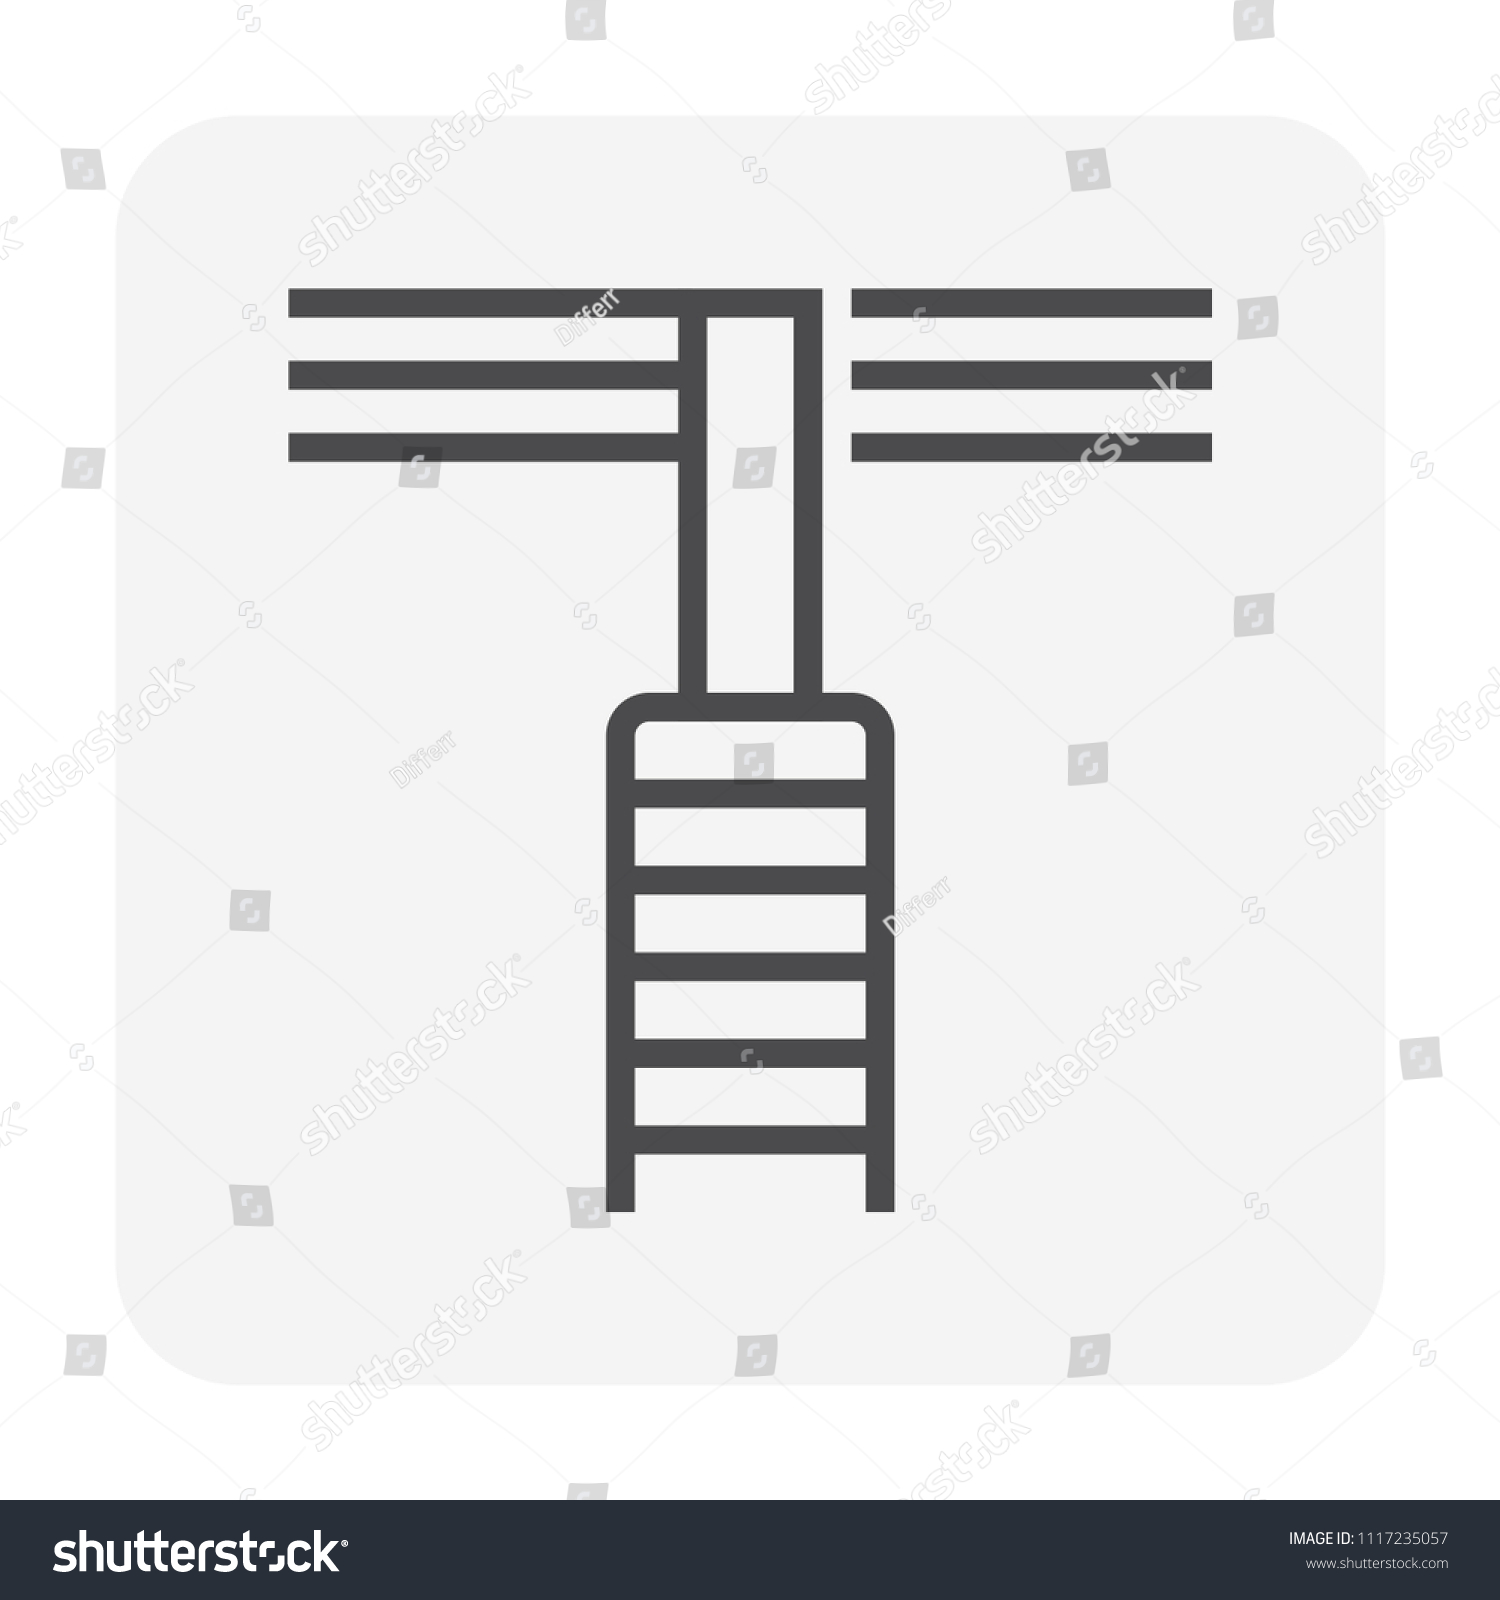 Air Duct Cleaning Tool Icon 64 X Stock Vector Royalty Free Hvac Drawing Images 64x64 Perfect Pixel And Editable Stroke